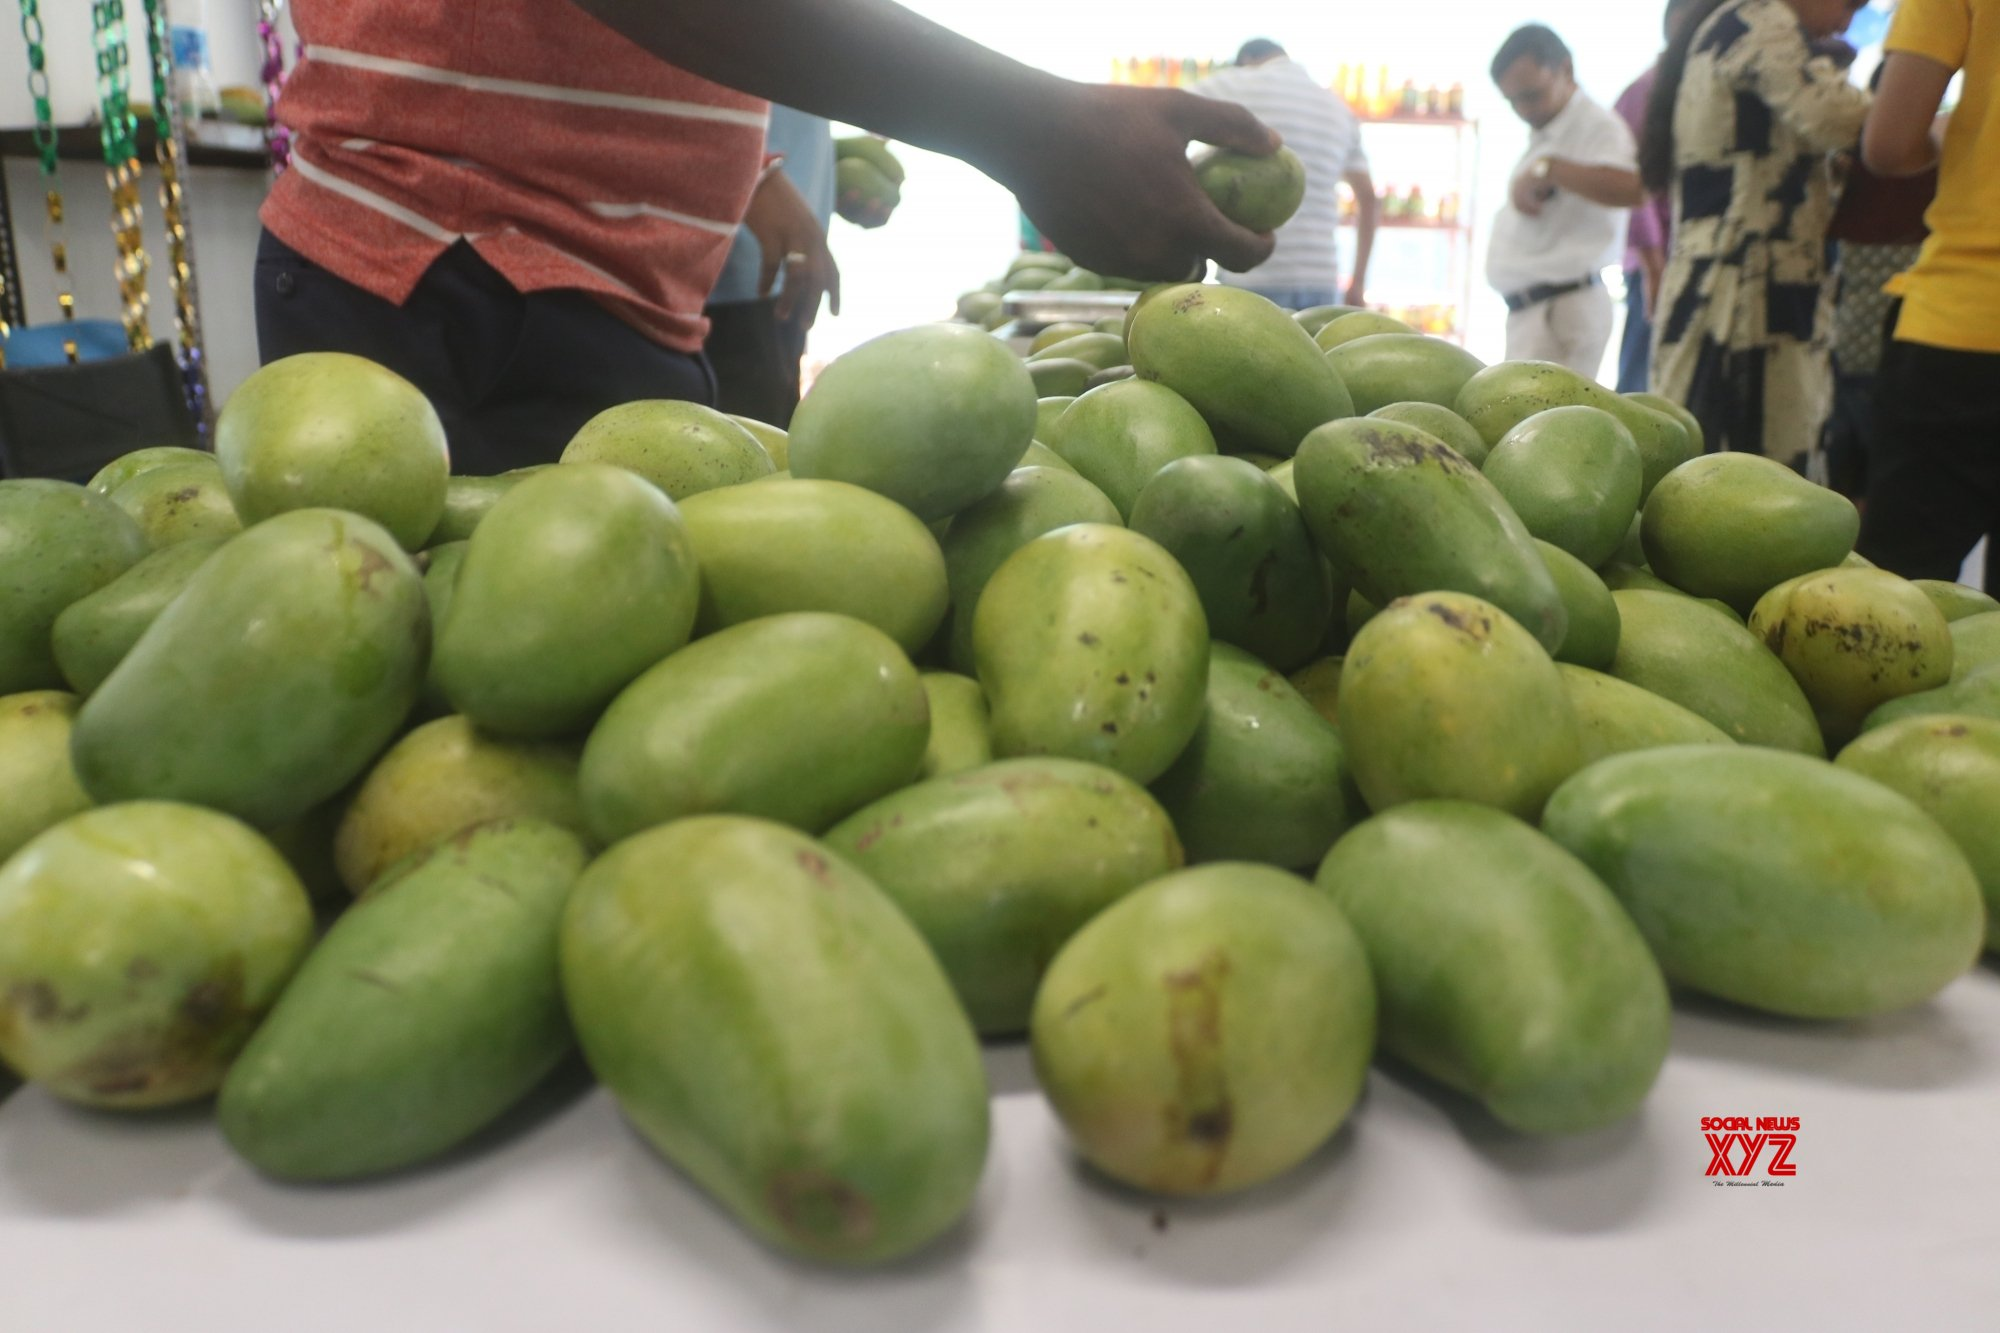 Delhi: Unruly crowd robs street vendor of mangoes worth thousands